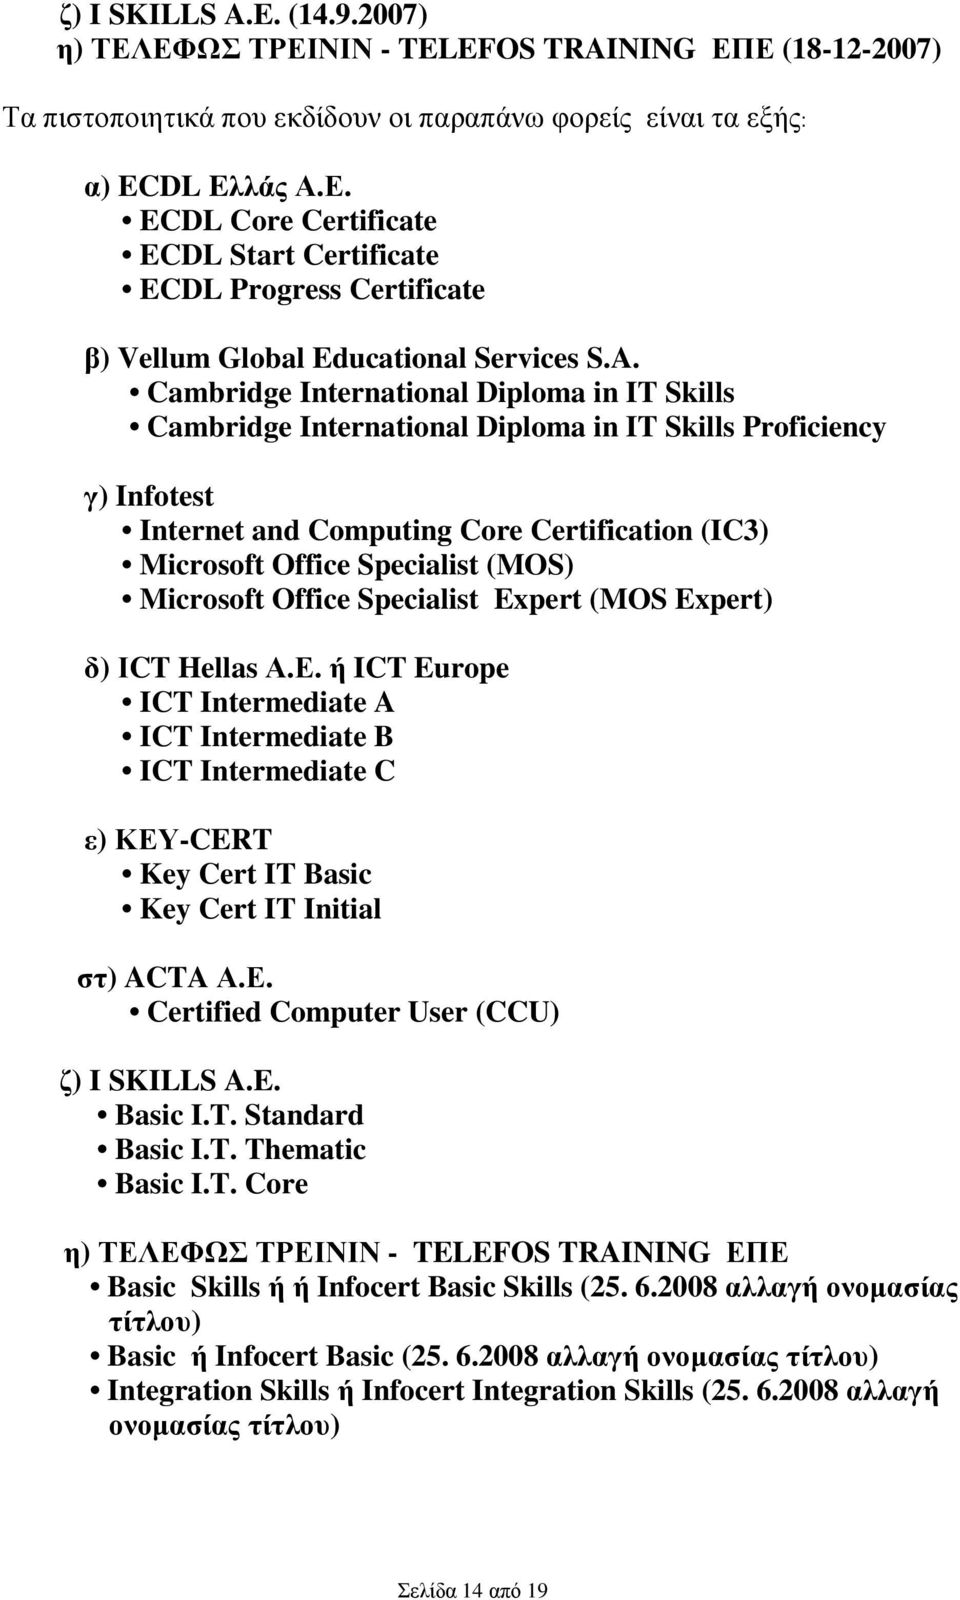 Microsoft Office Specialist Expert (MOS Expert) δ) ΙCT Hellas Α.Ε. ή ICT Europe ICT Intermediate A ICT Intermediate B ICT Intermediate C ε) ΚΕΥ-CERT Key Cert IT Basic Key Cert IT Initial στ) ACTA Α.Ε. Certified Computer User (CCU) ζ) I SKILLS A.